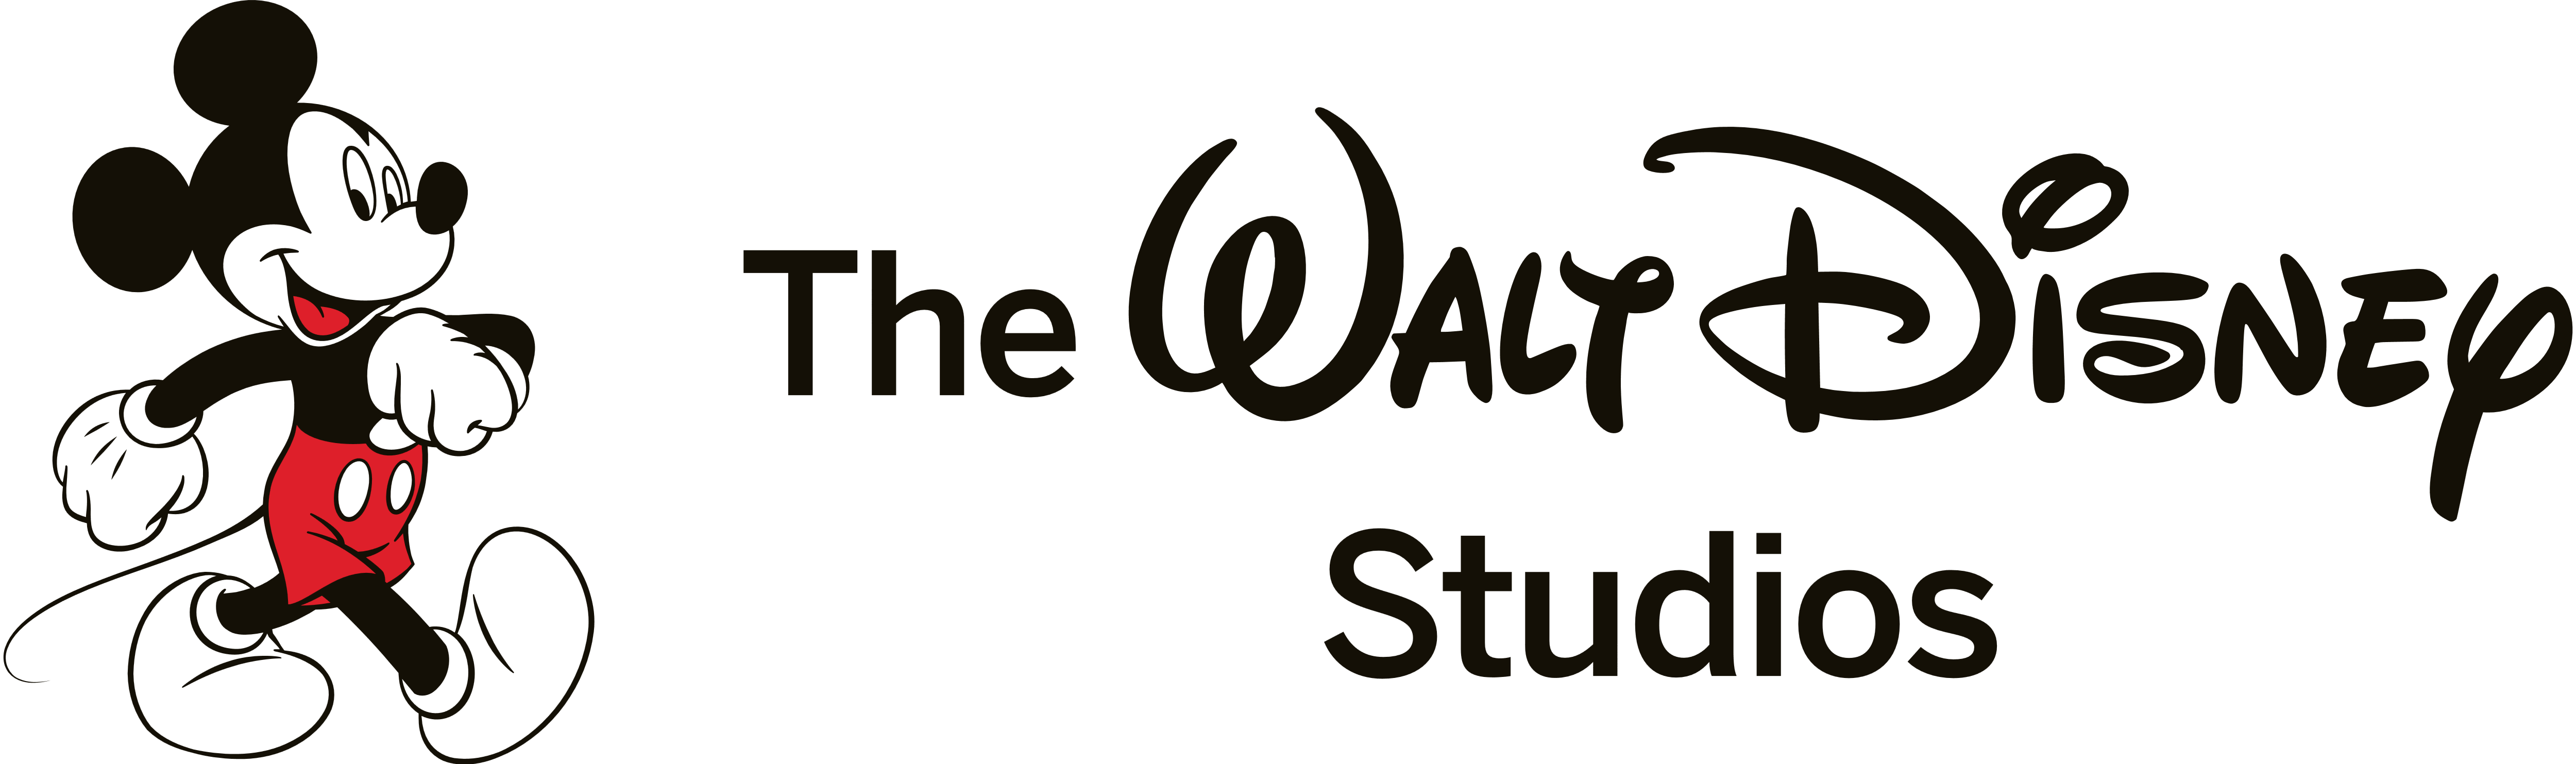 The Walt Disney Company Logo - The Walt Disney – Logos Download